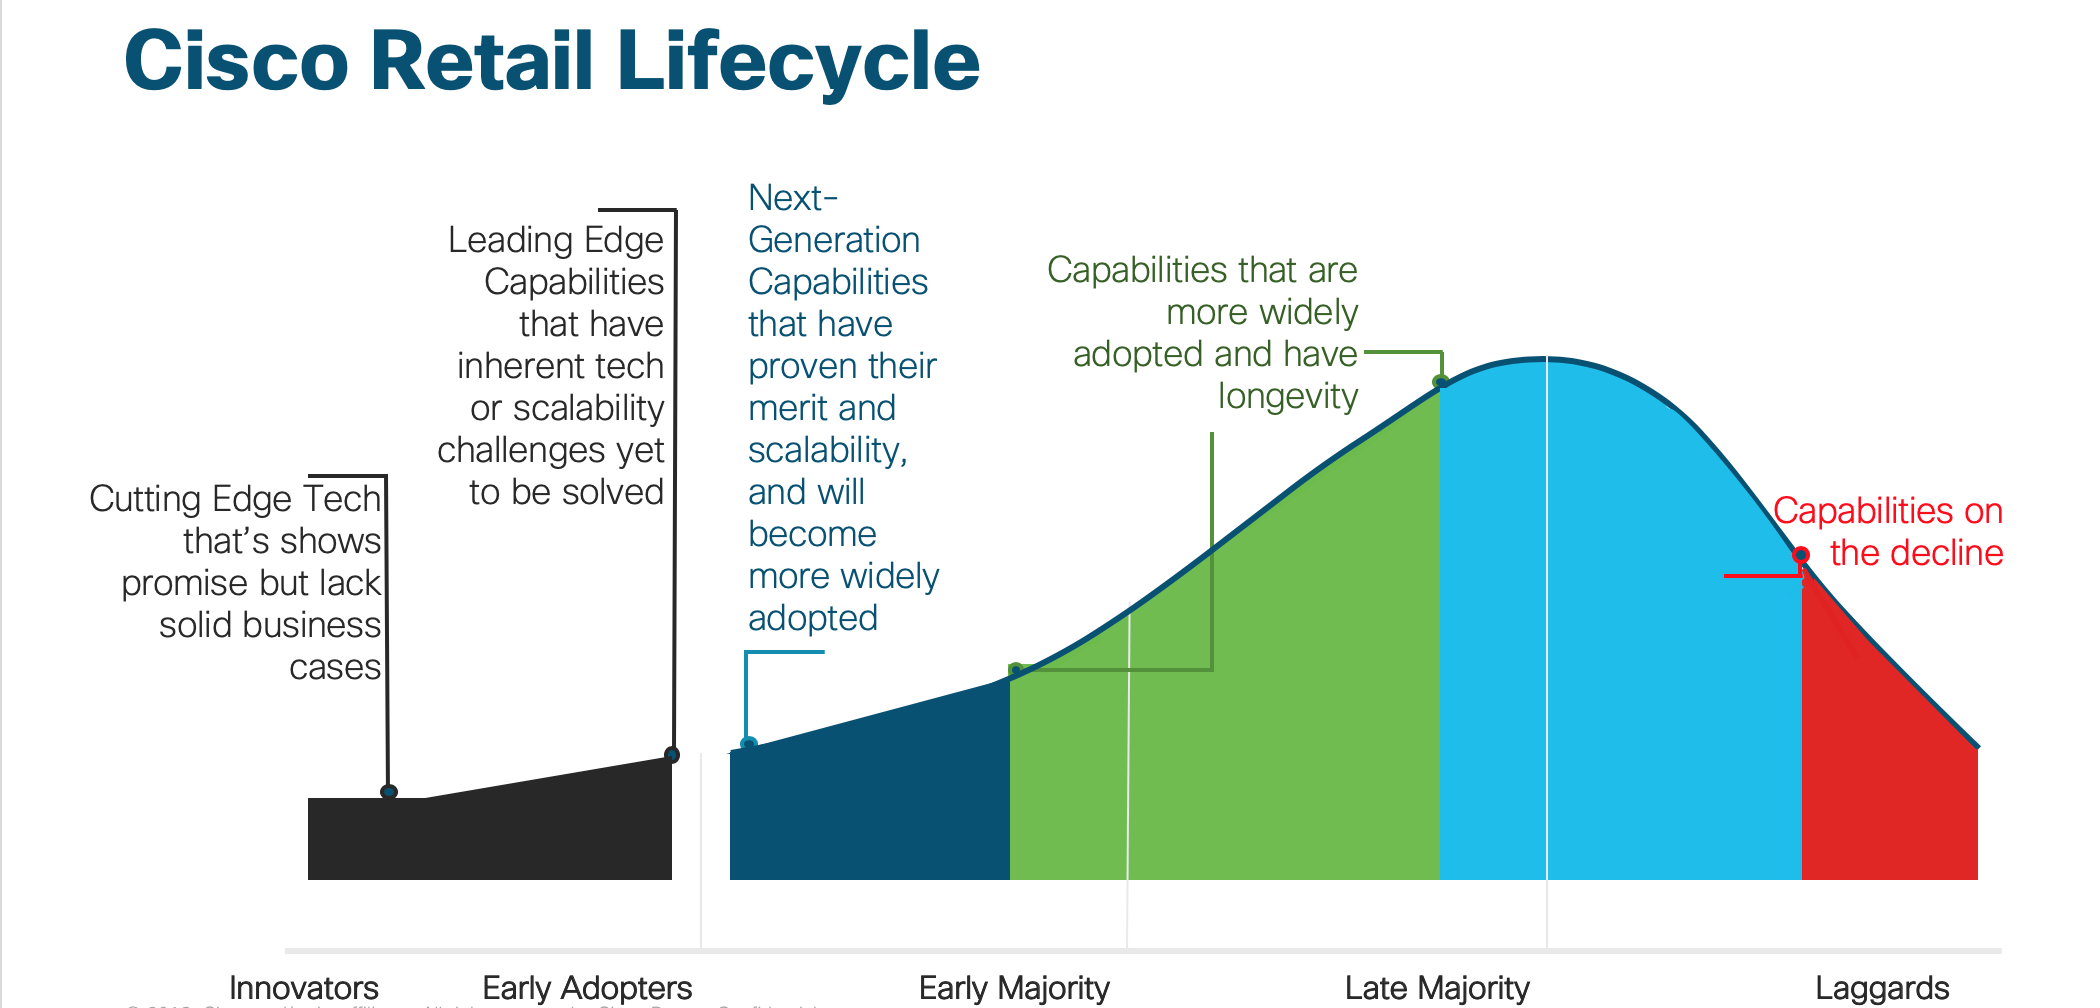 Product Lifecycle - Definitions along the curve